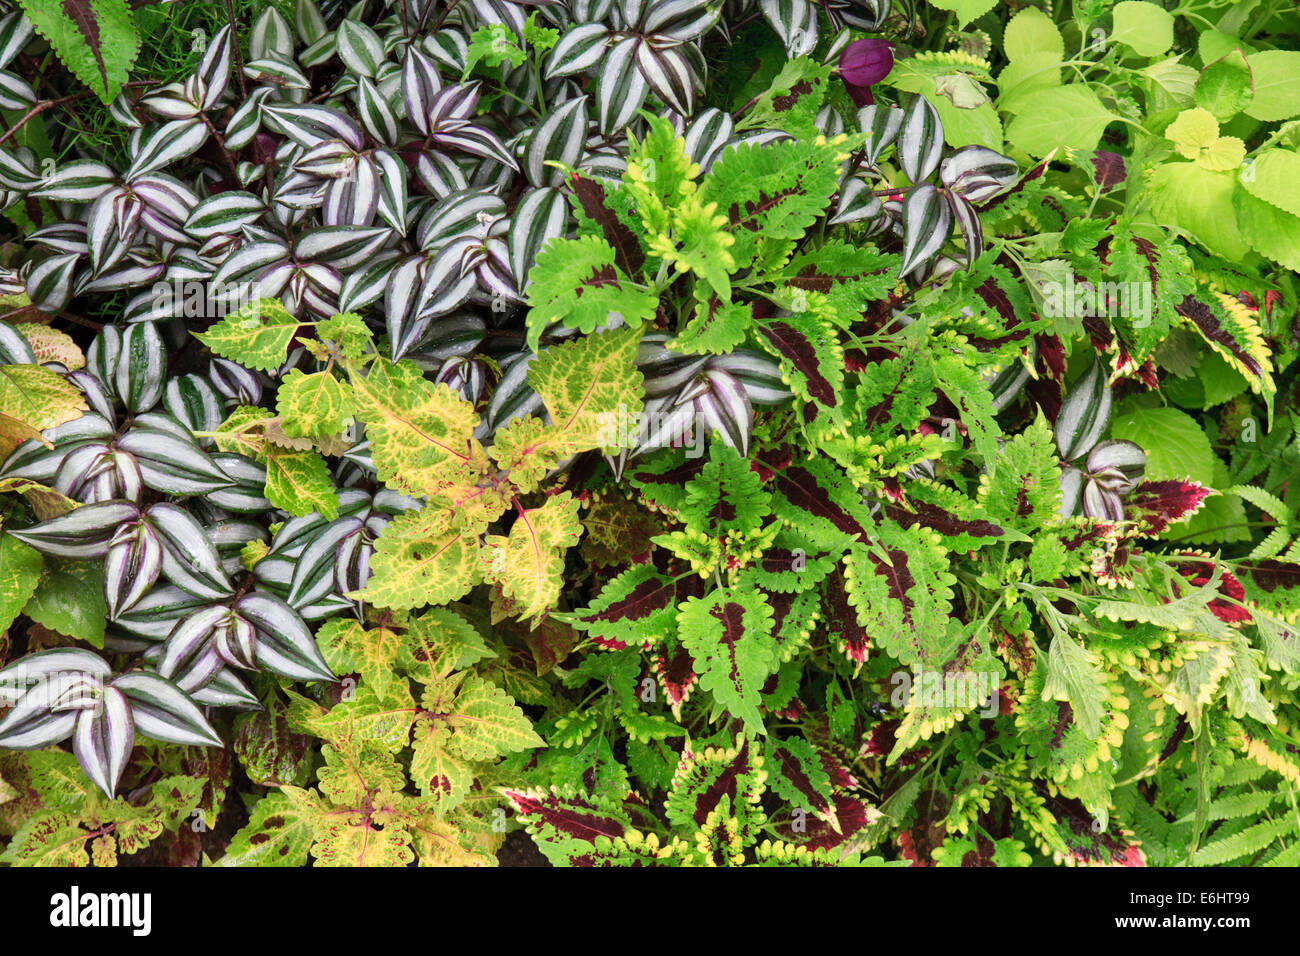 Leaves of coleus and Wandering Jew (Tradescantia zebrina) leaves. - Stock Image